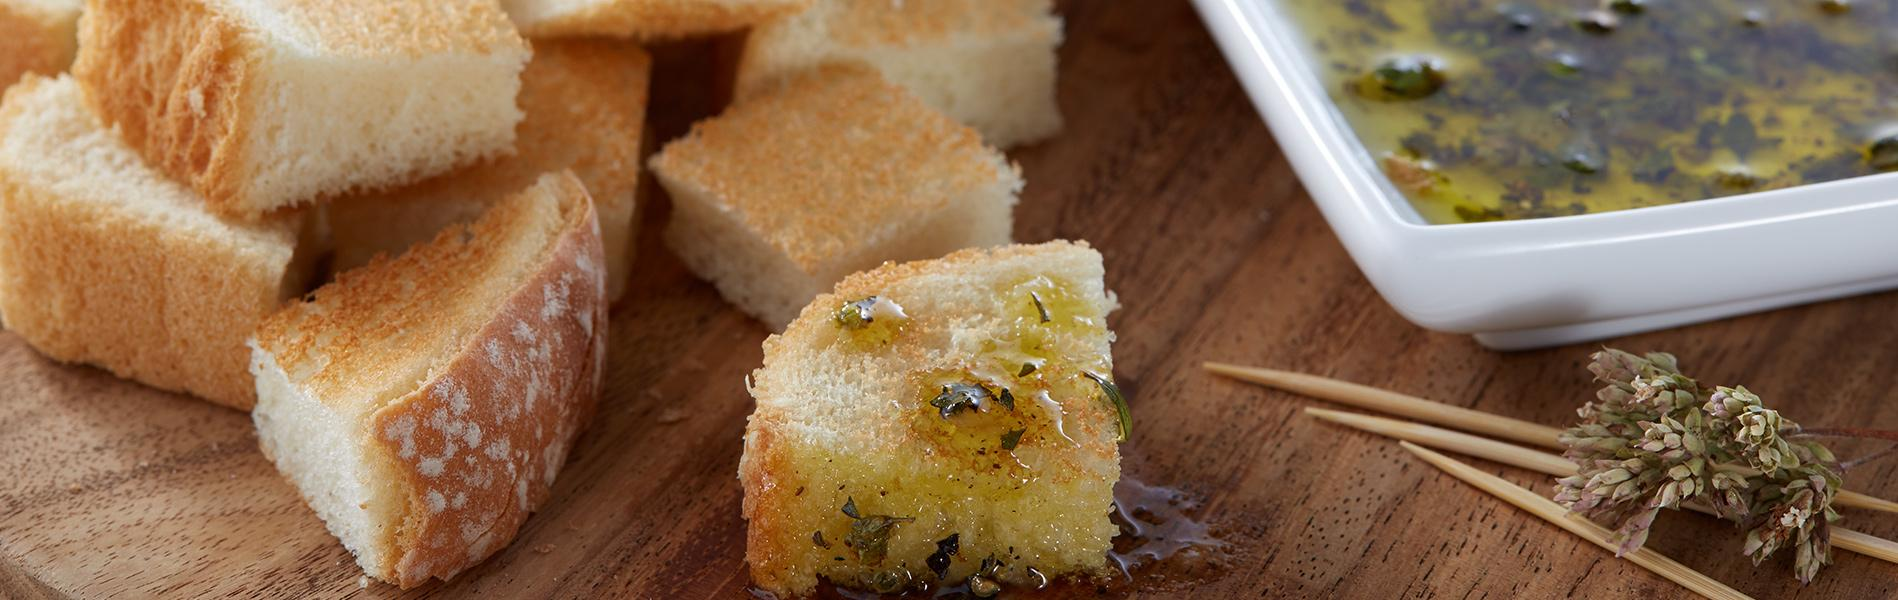 Cubed Artesano Bread serve with Italian Seasoning and Olive Oil